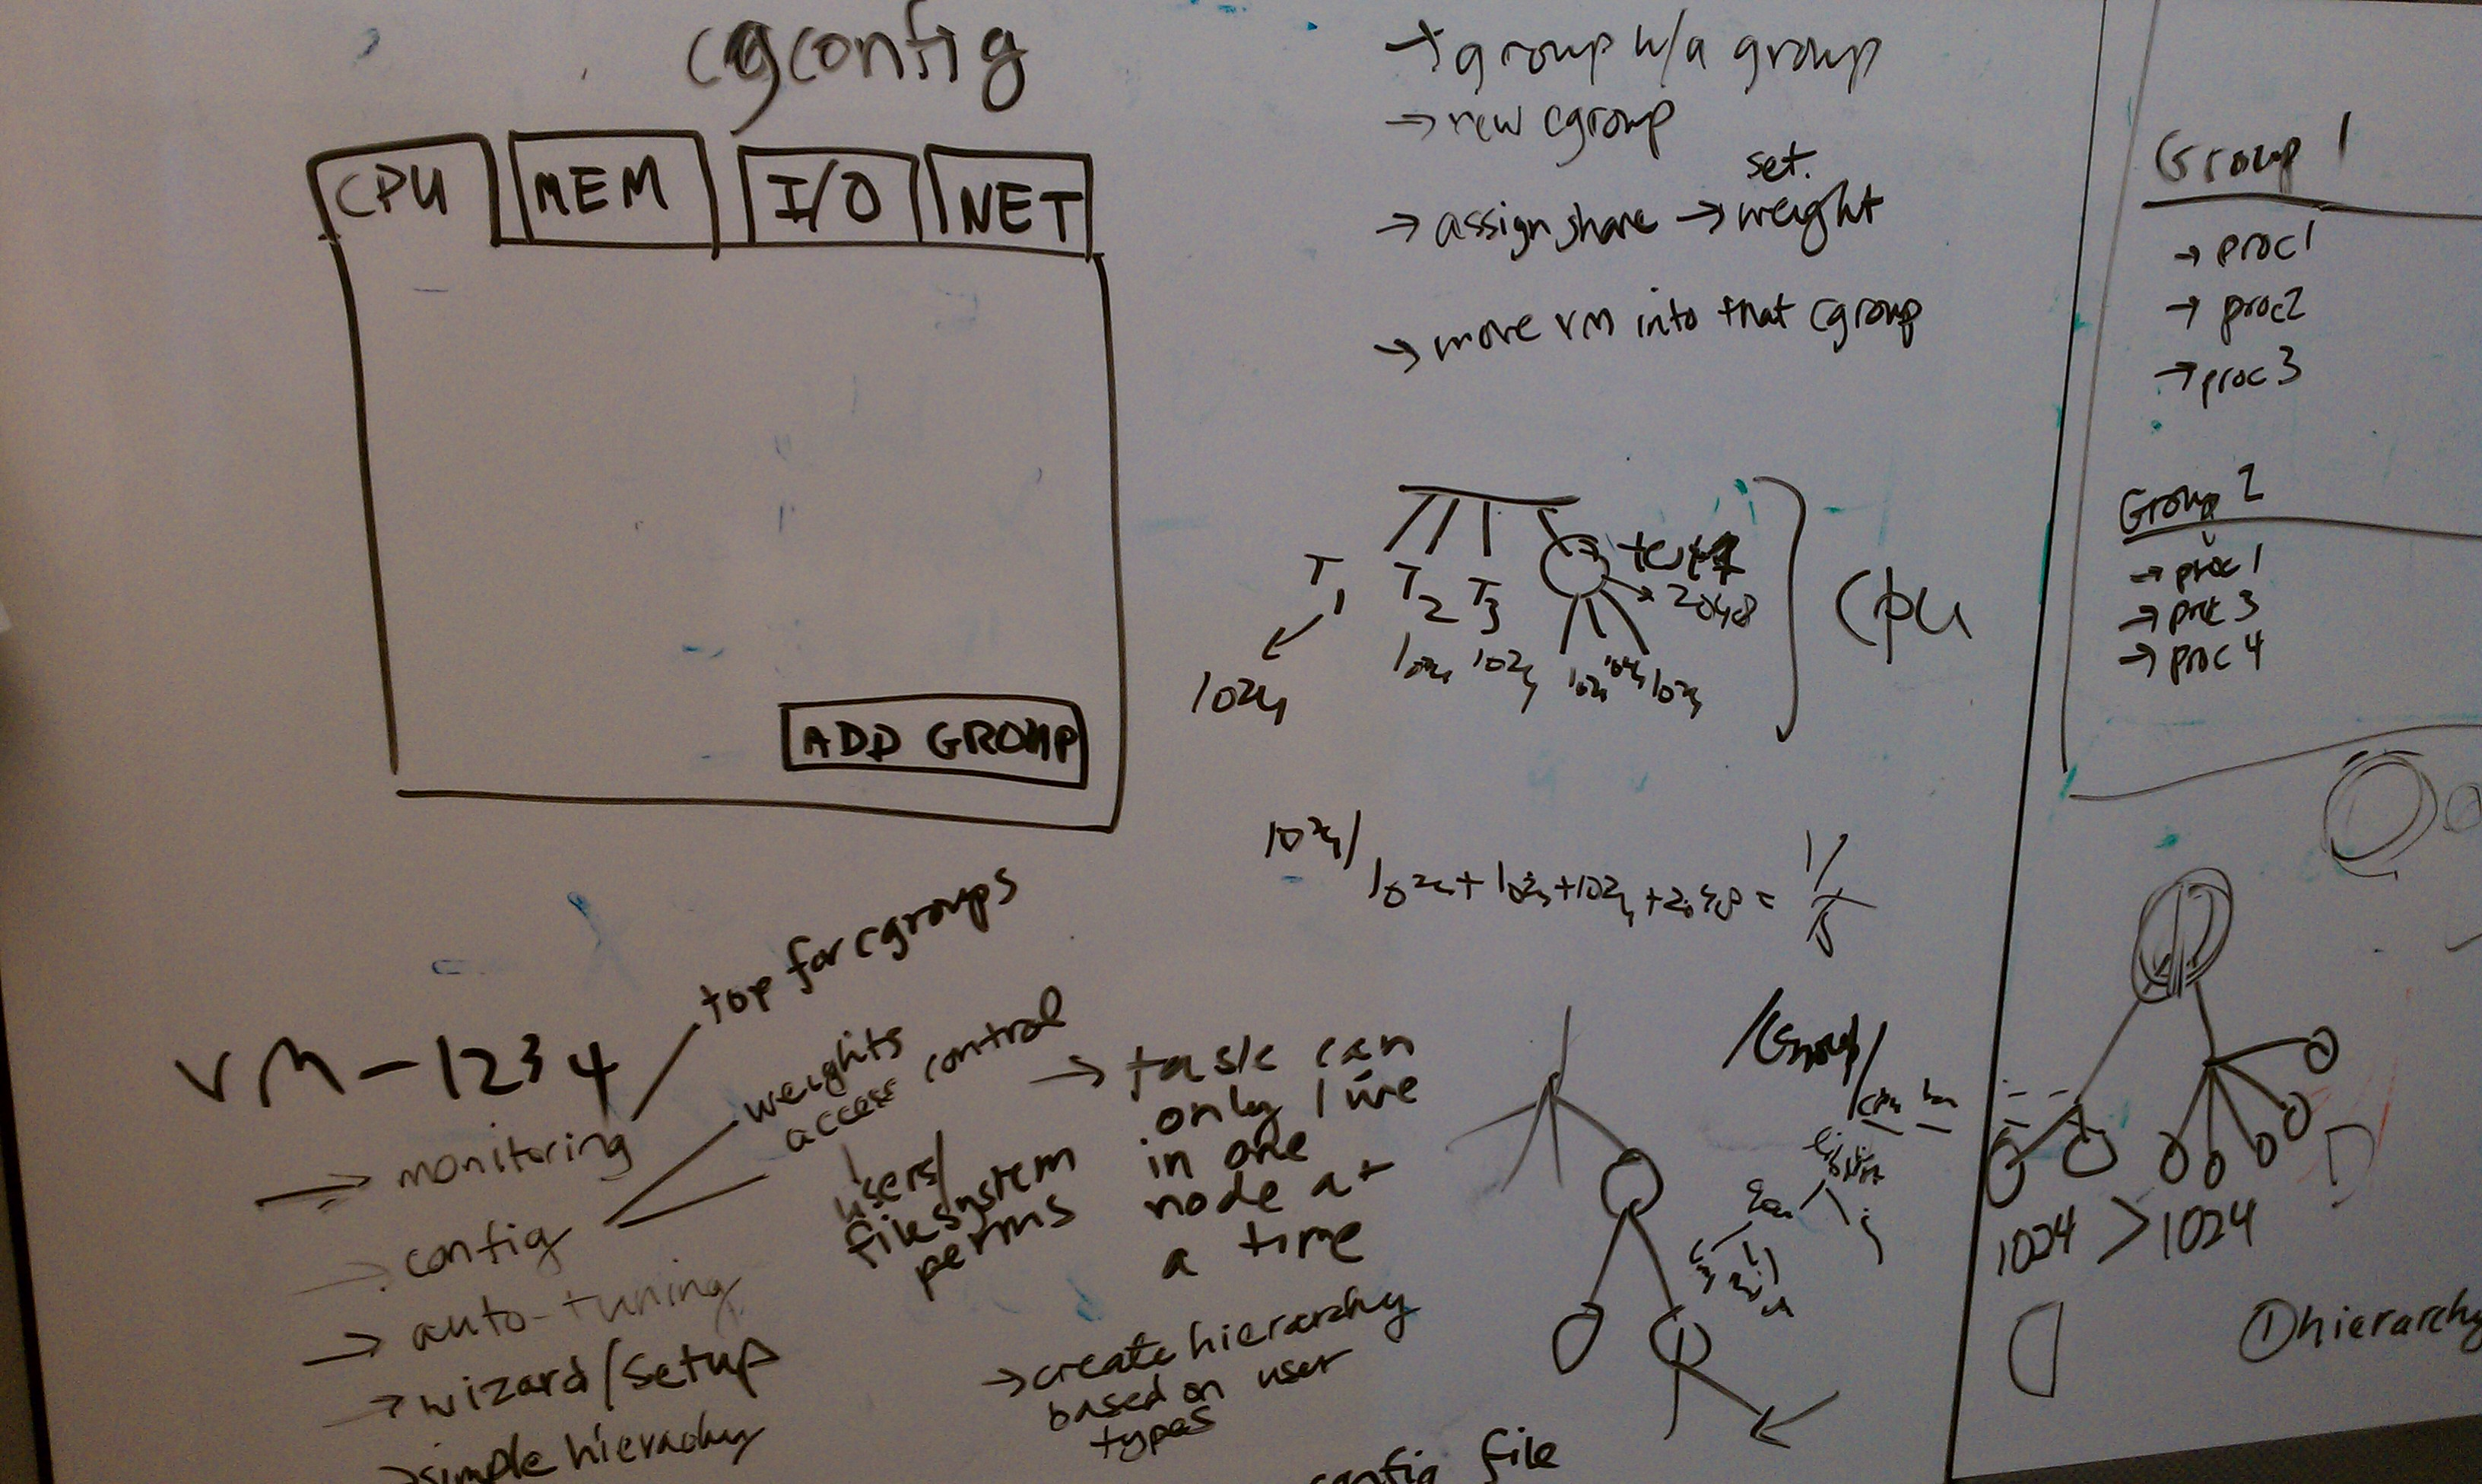 Cgroups-early-whiteboard-1.jpg